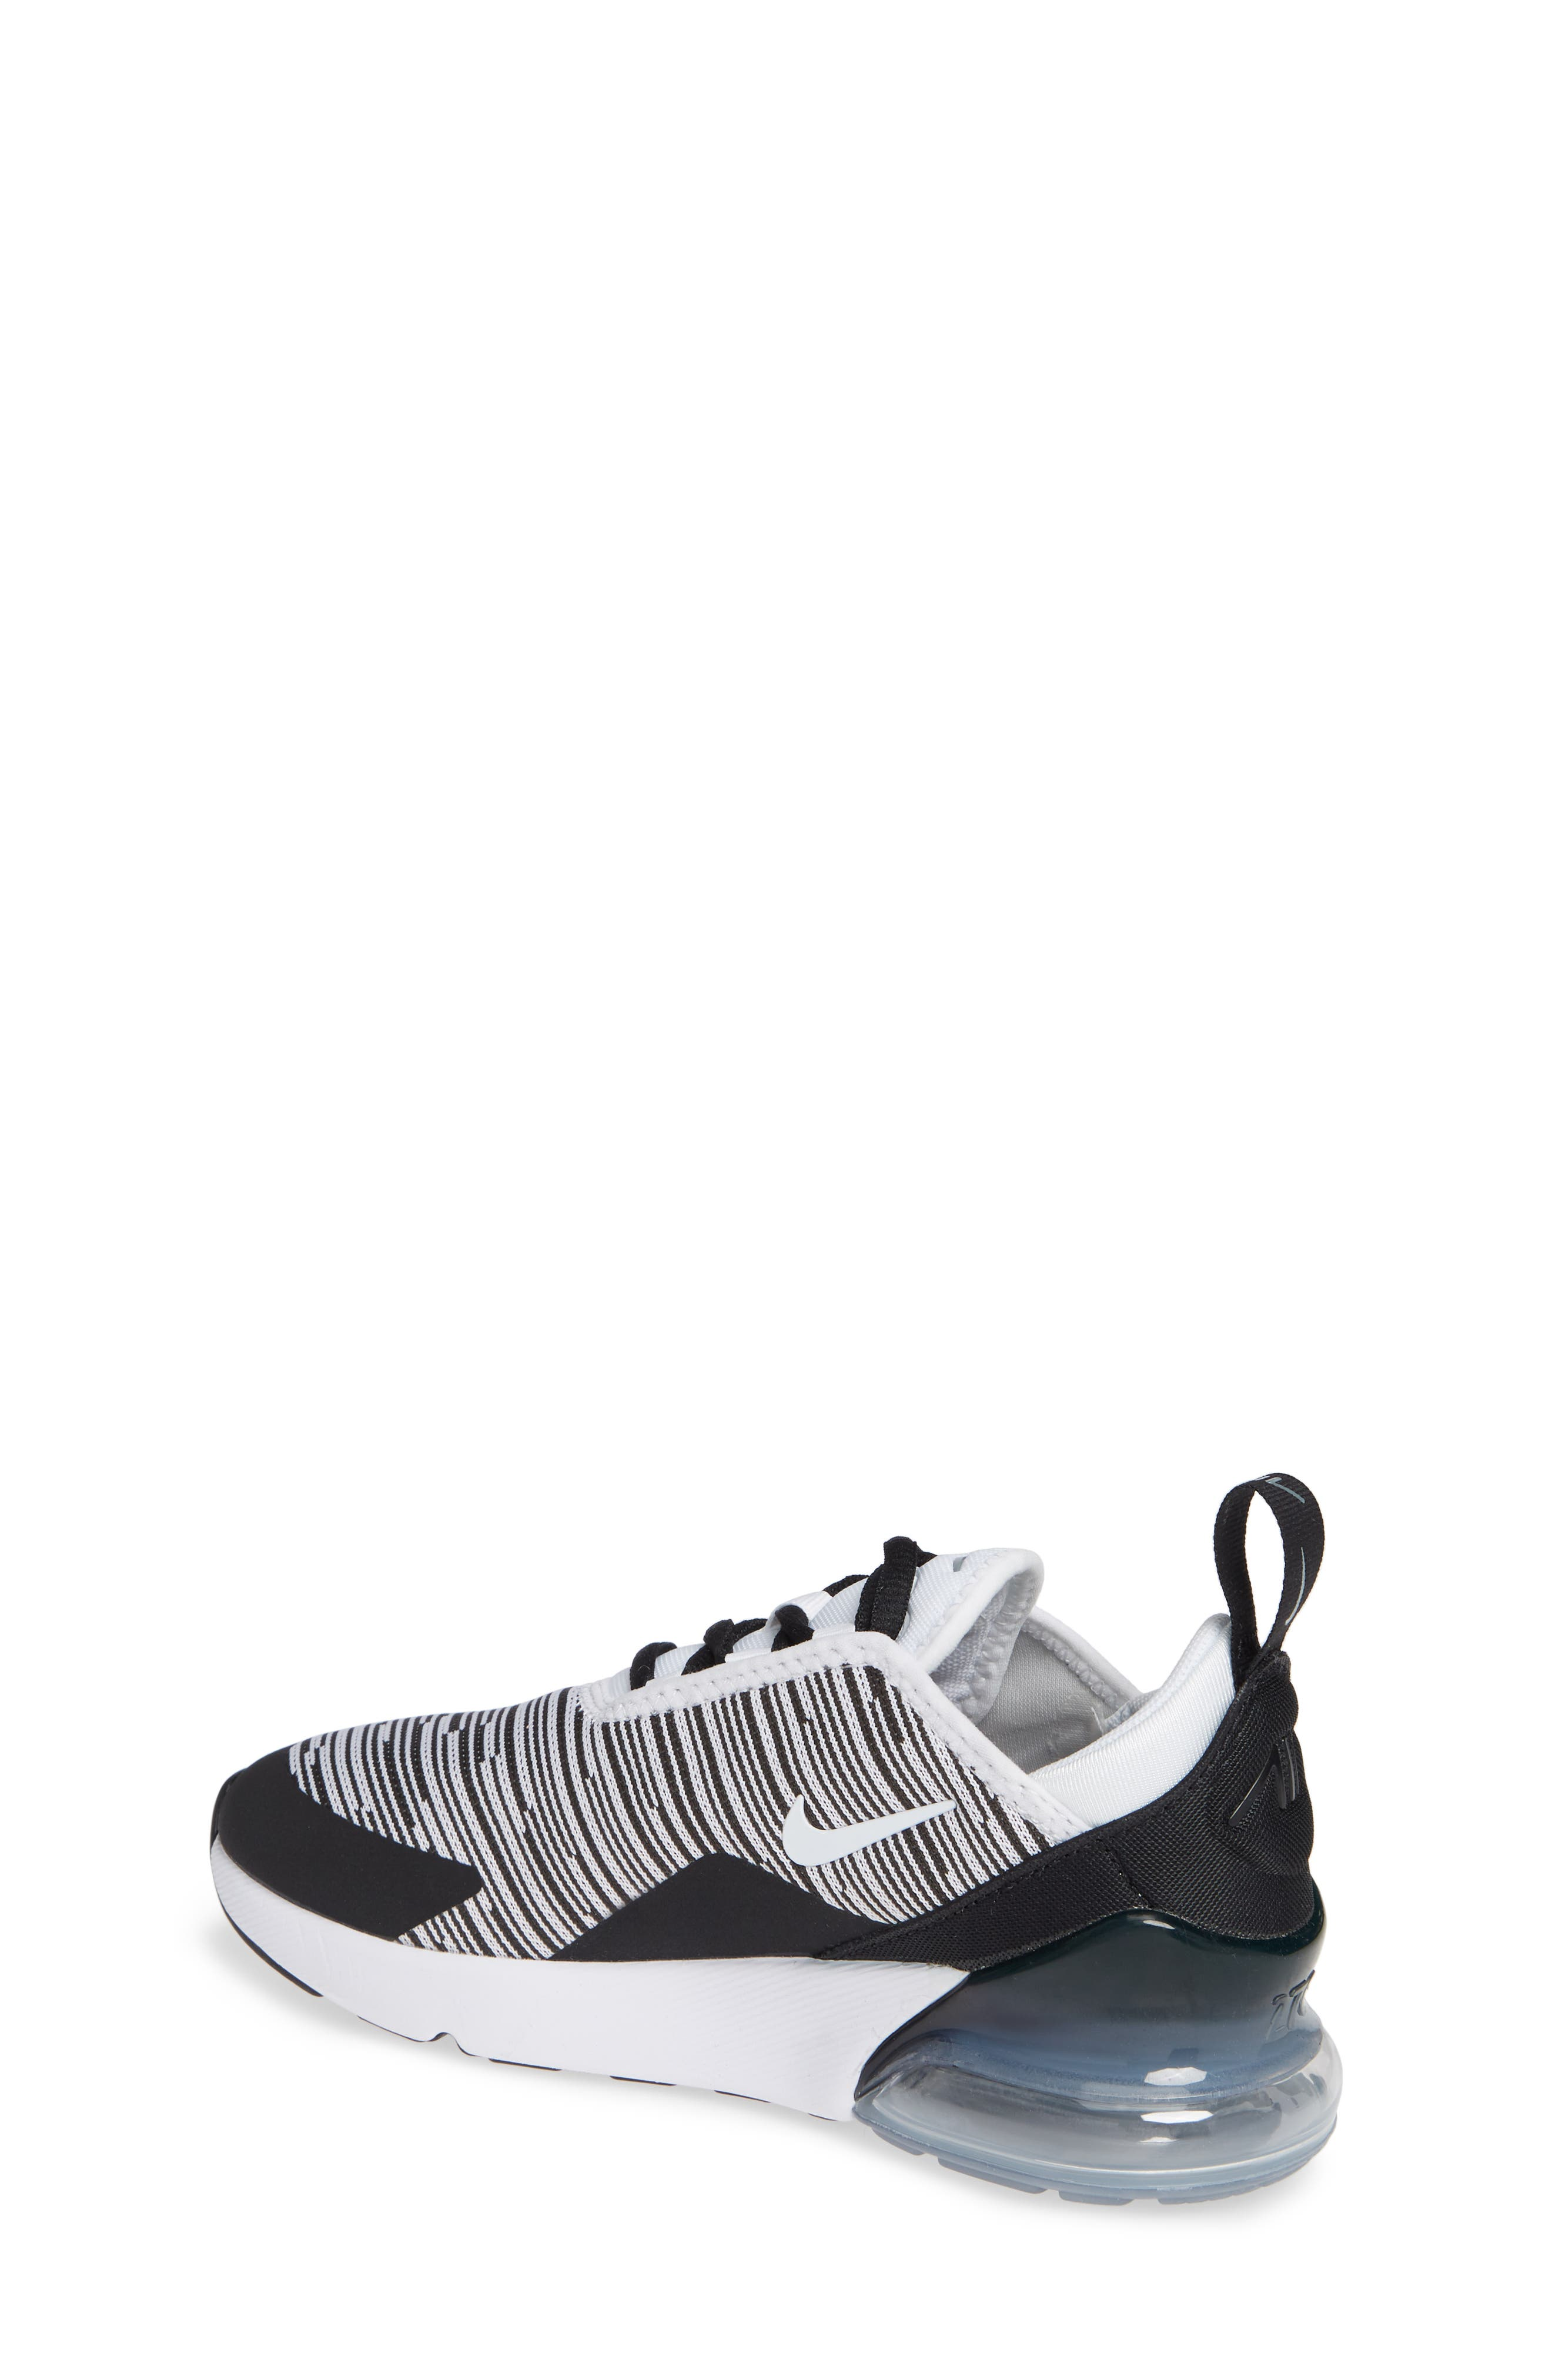 Air Max 270 Sneaker,                             Alternate thumbnail 2, color,                             Black/ White/ Grey/ Silver